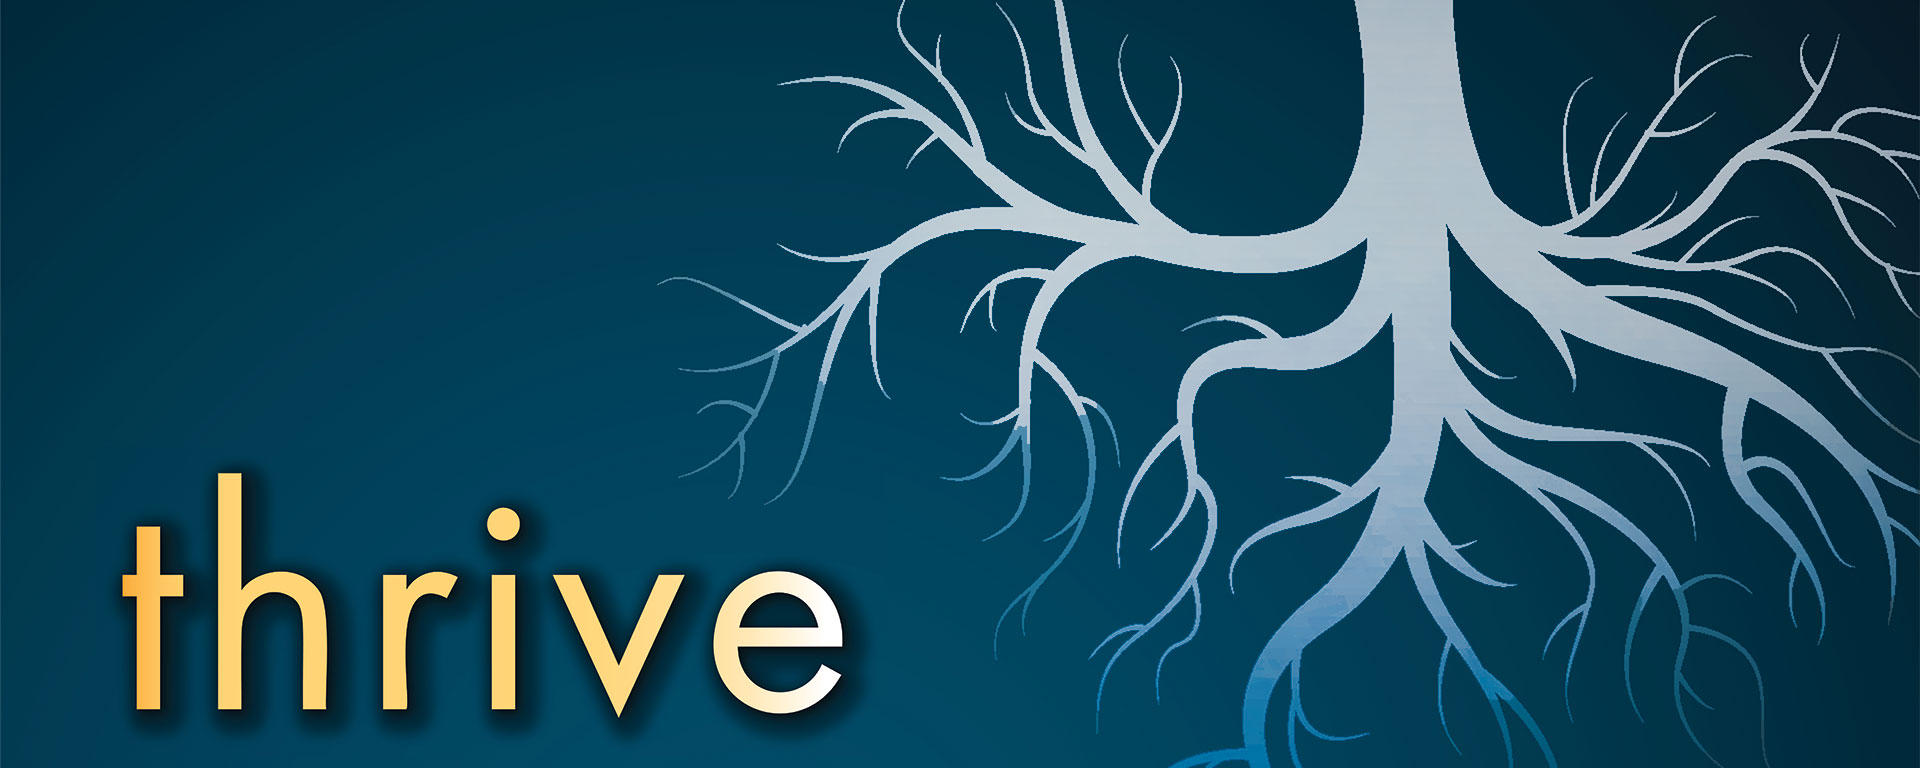 banner image with thrive and tree roots